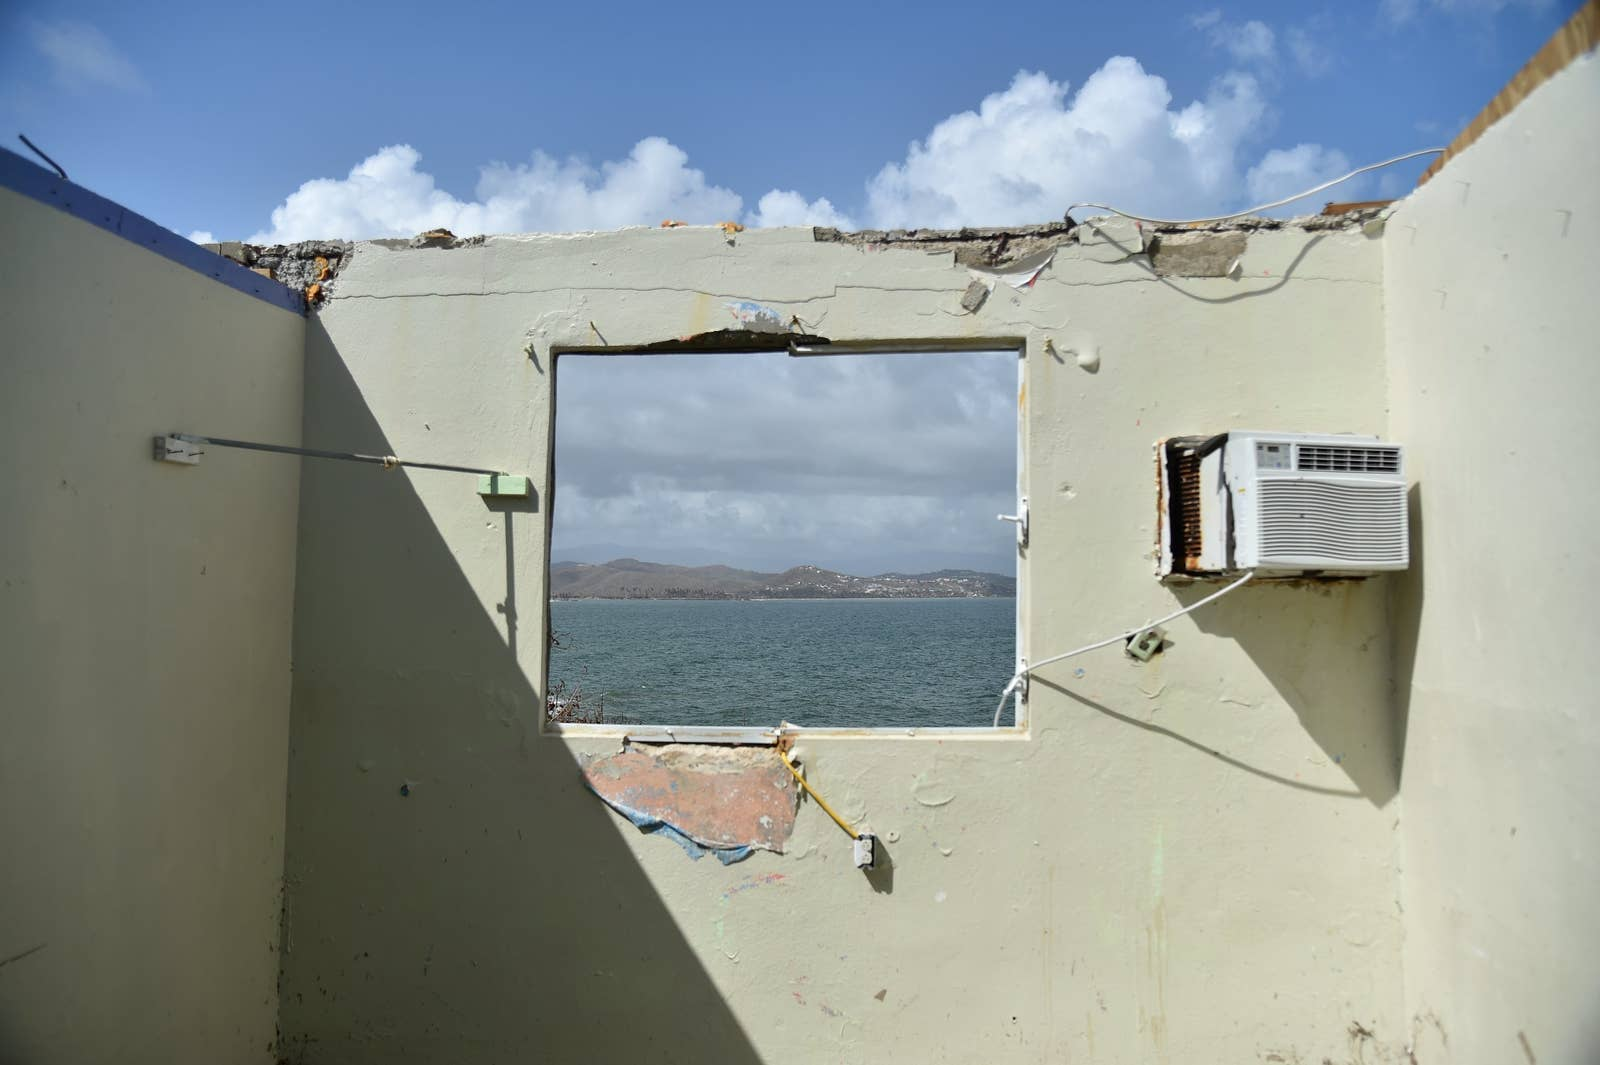 The wall of a house with no roof looks out onto the sea